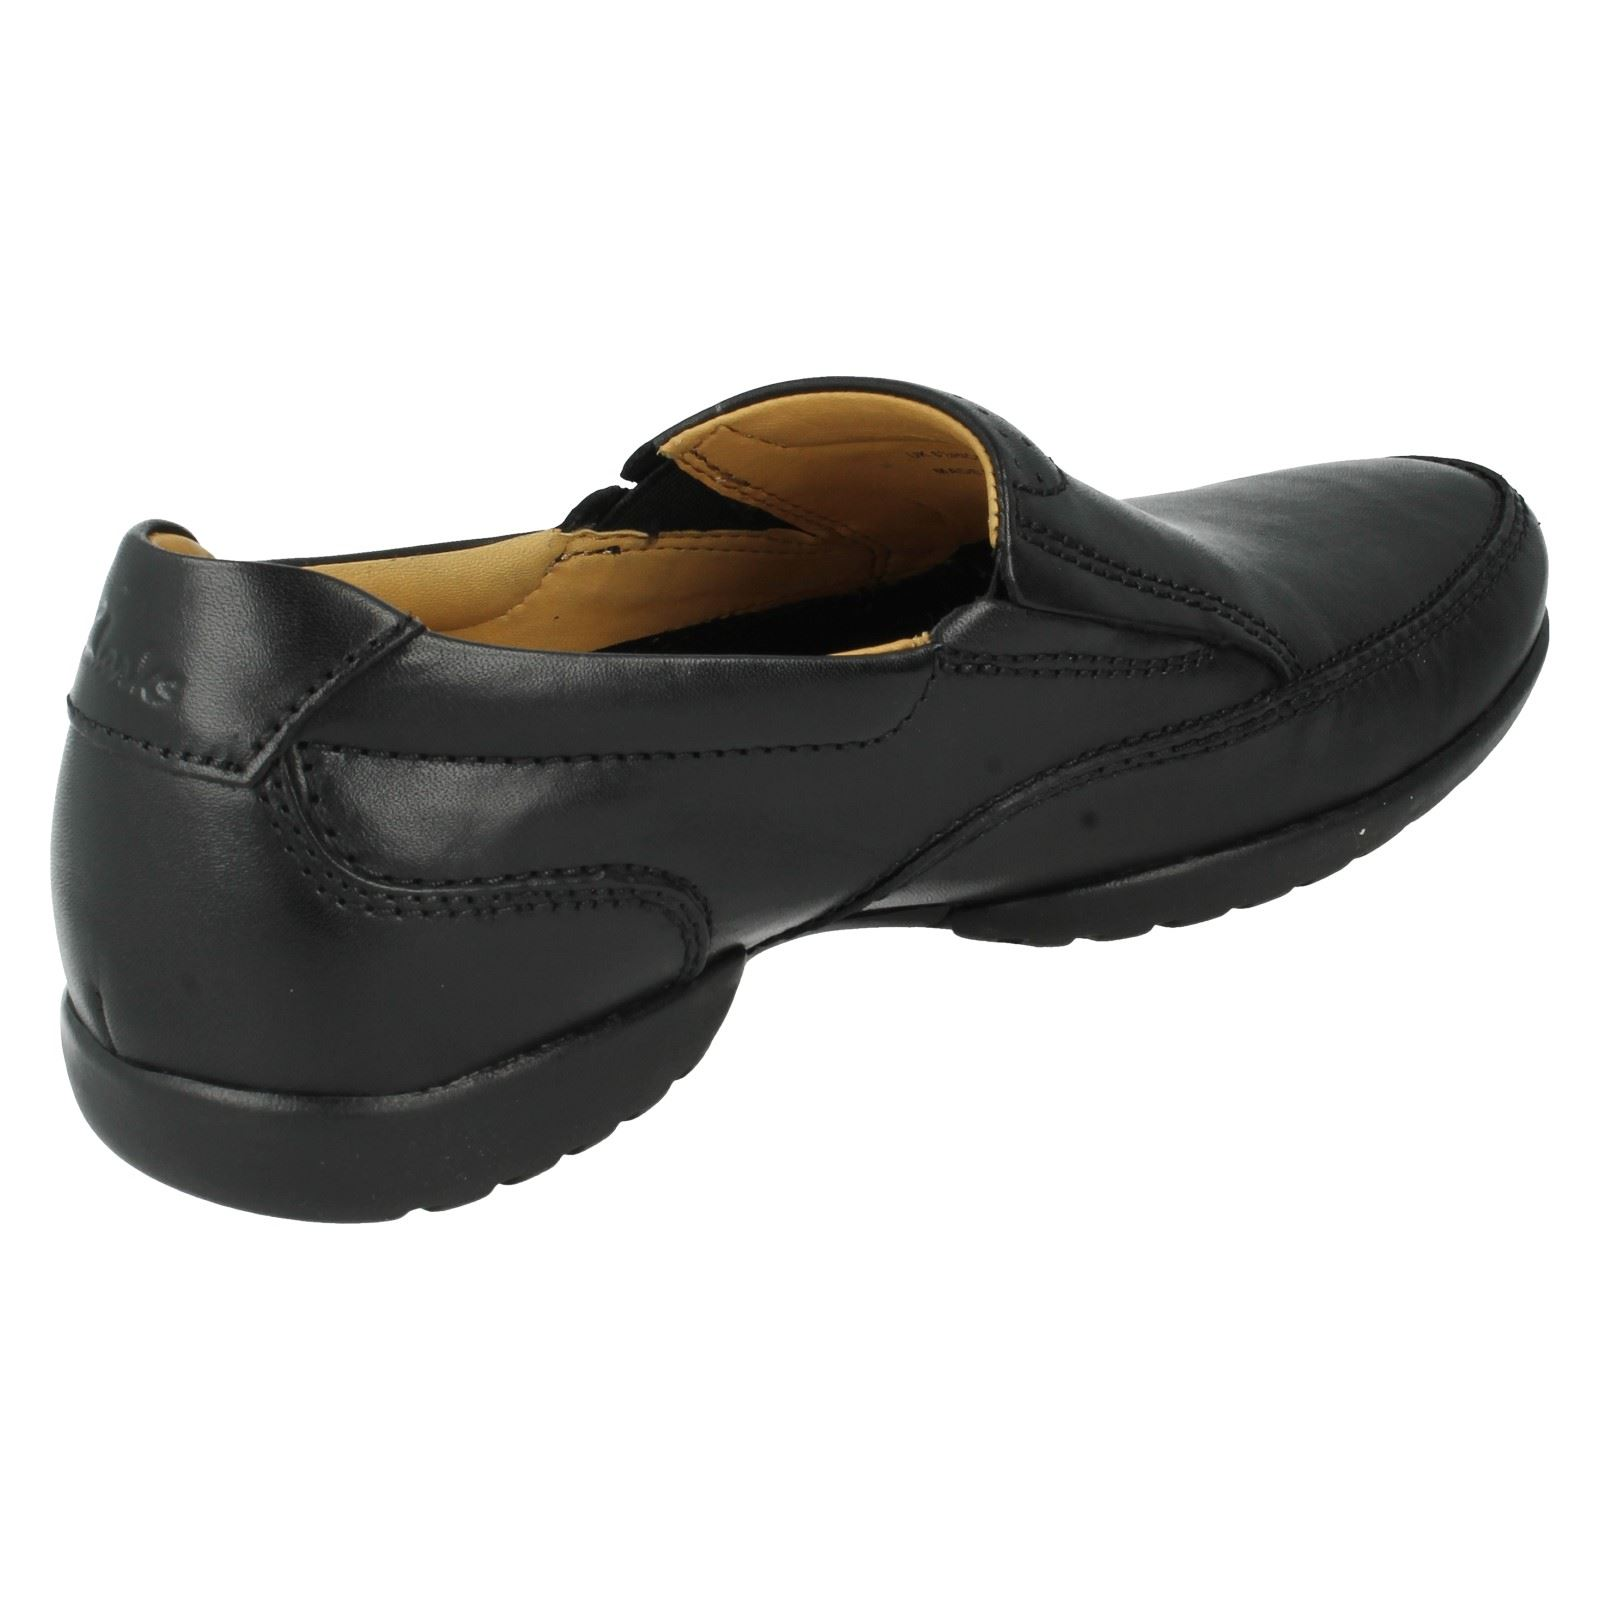 Uomo Clarks Casual Schuhes Free Style - Recline Free Schuhes ac1546